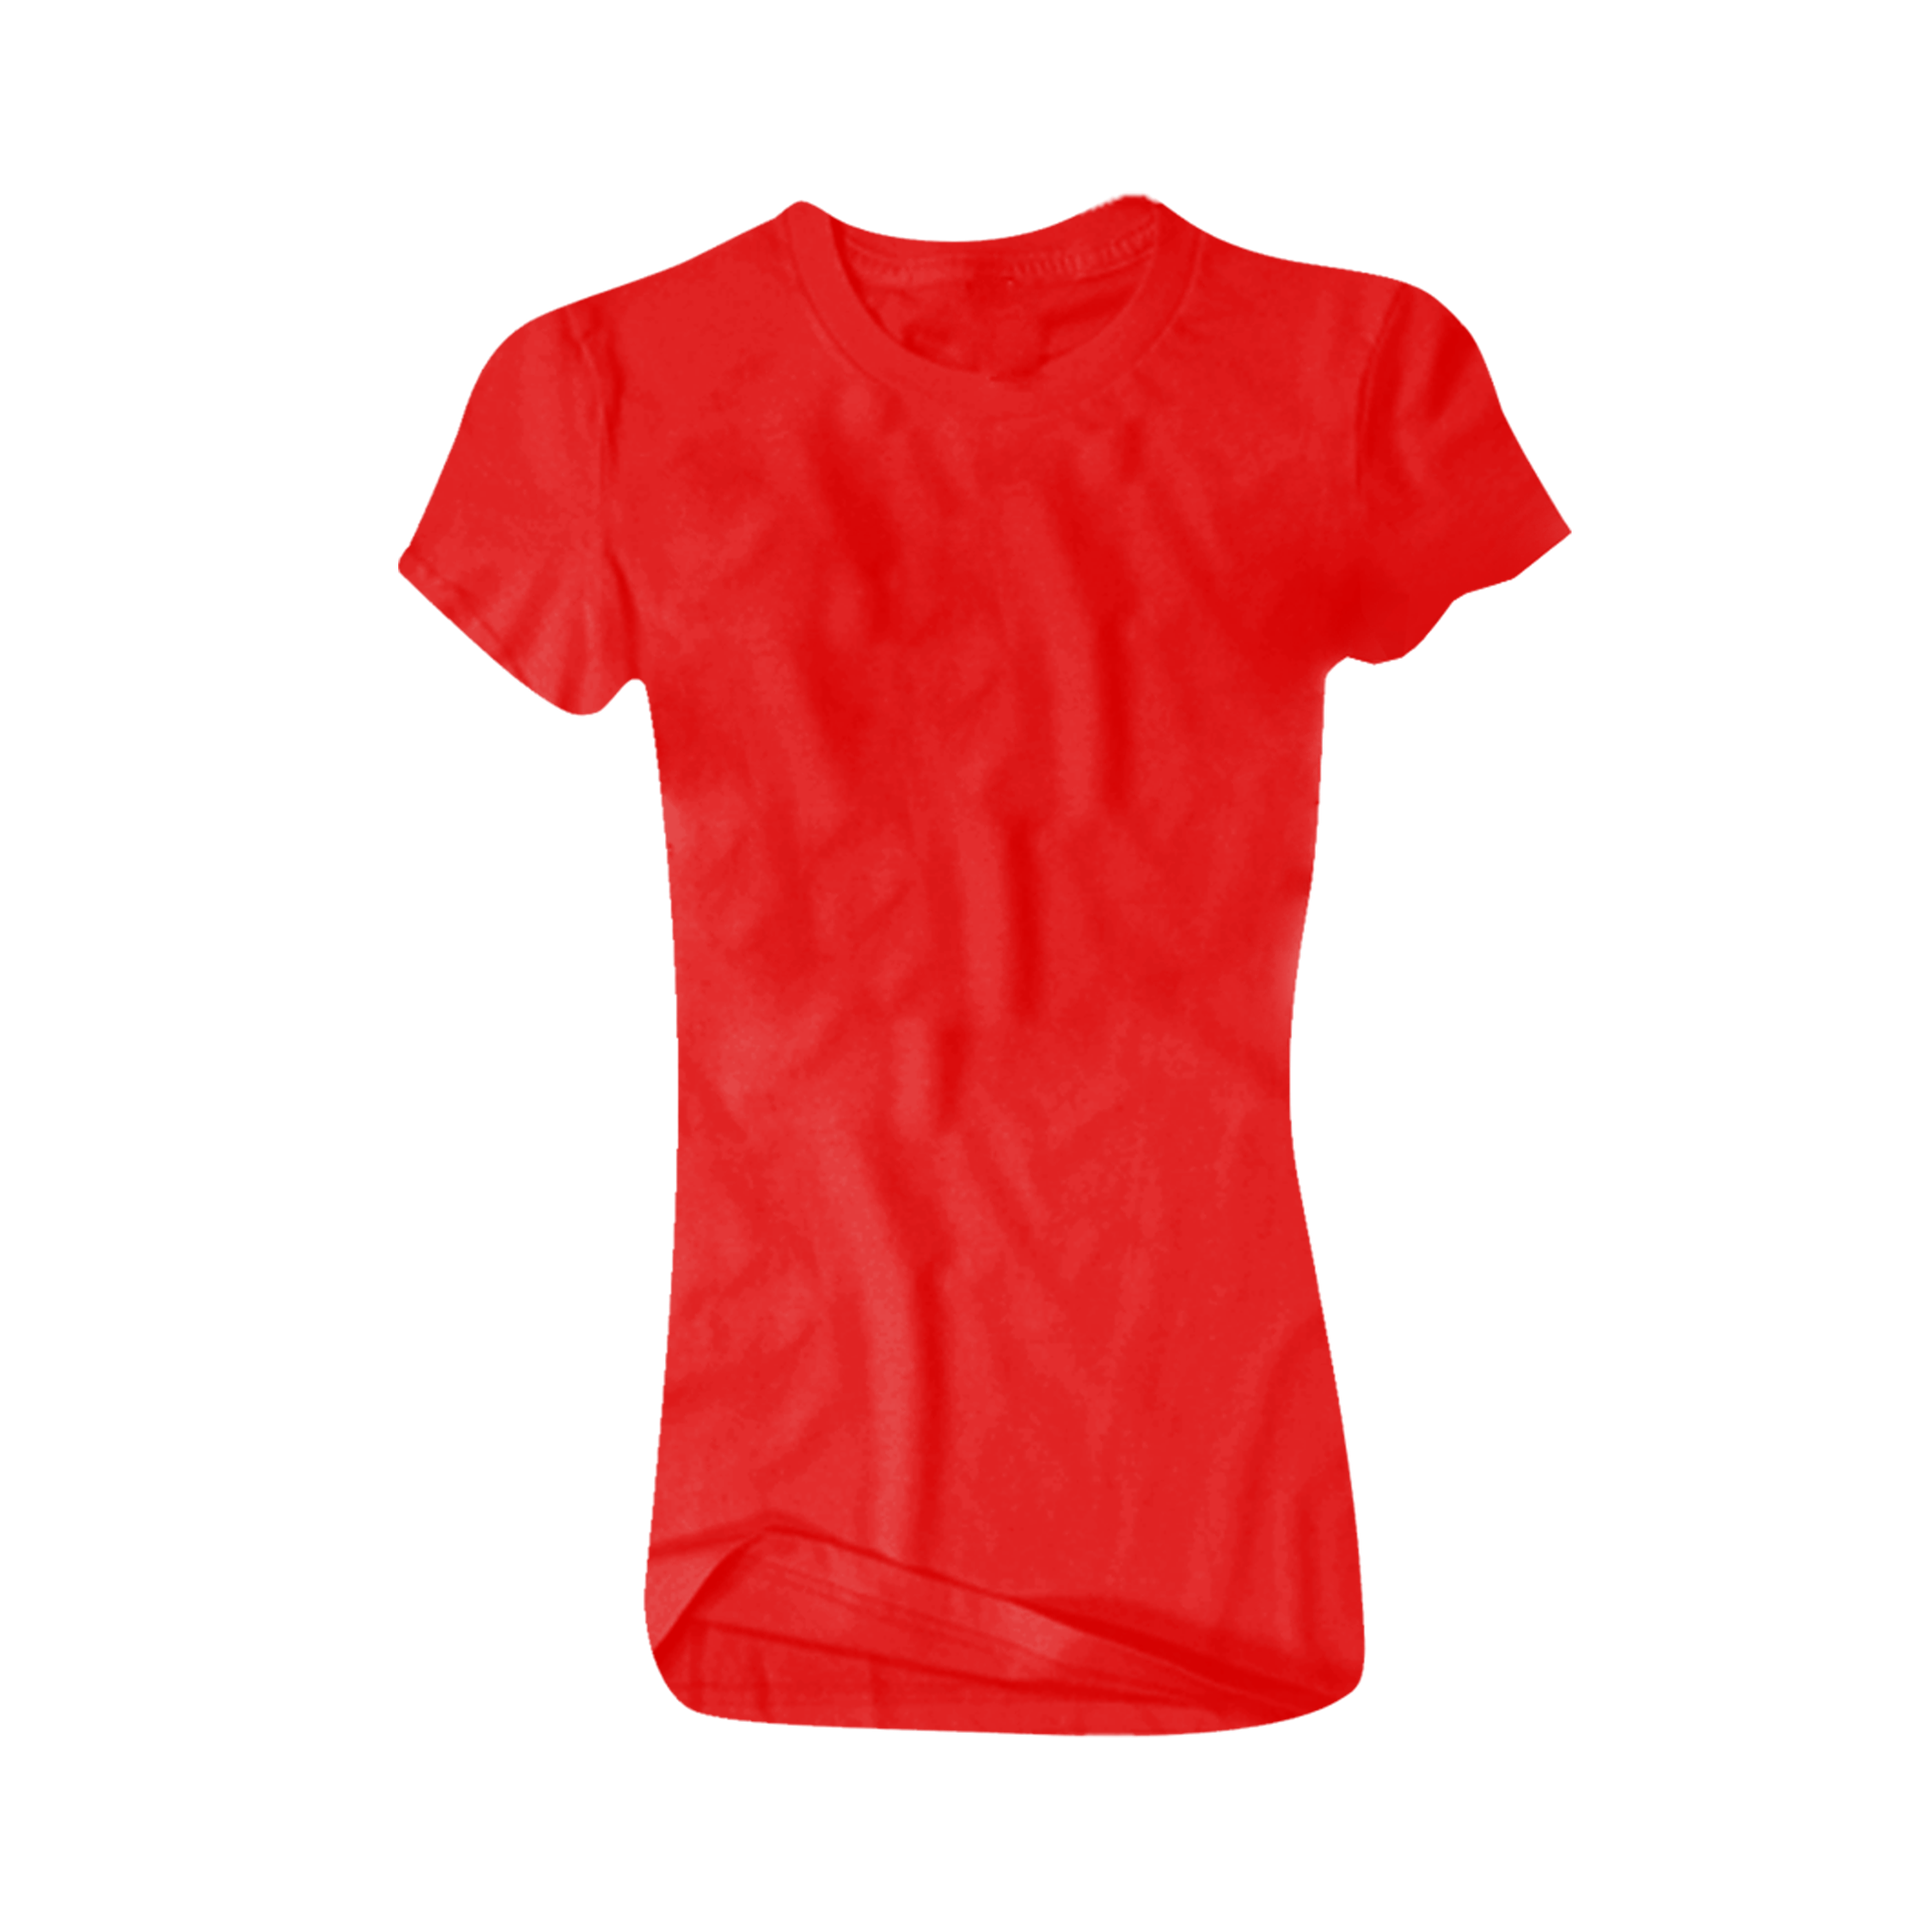 When To Use The Services For Shirt Printing Sacramento Companies Are Offering